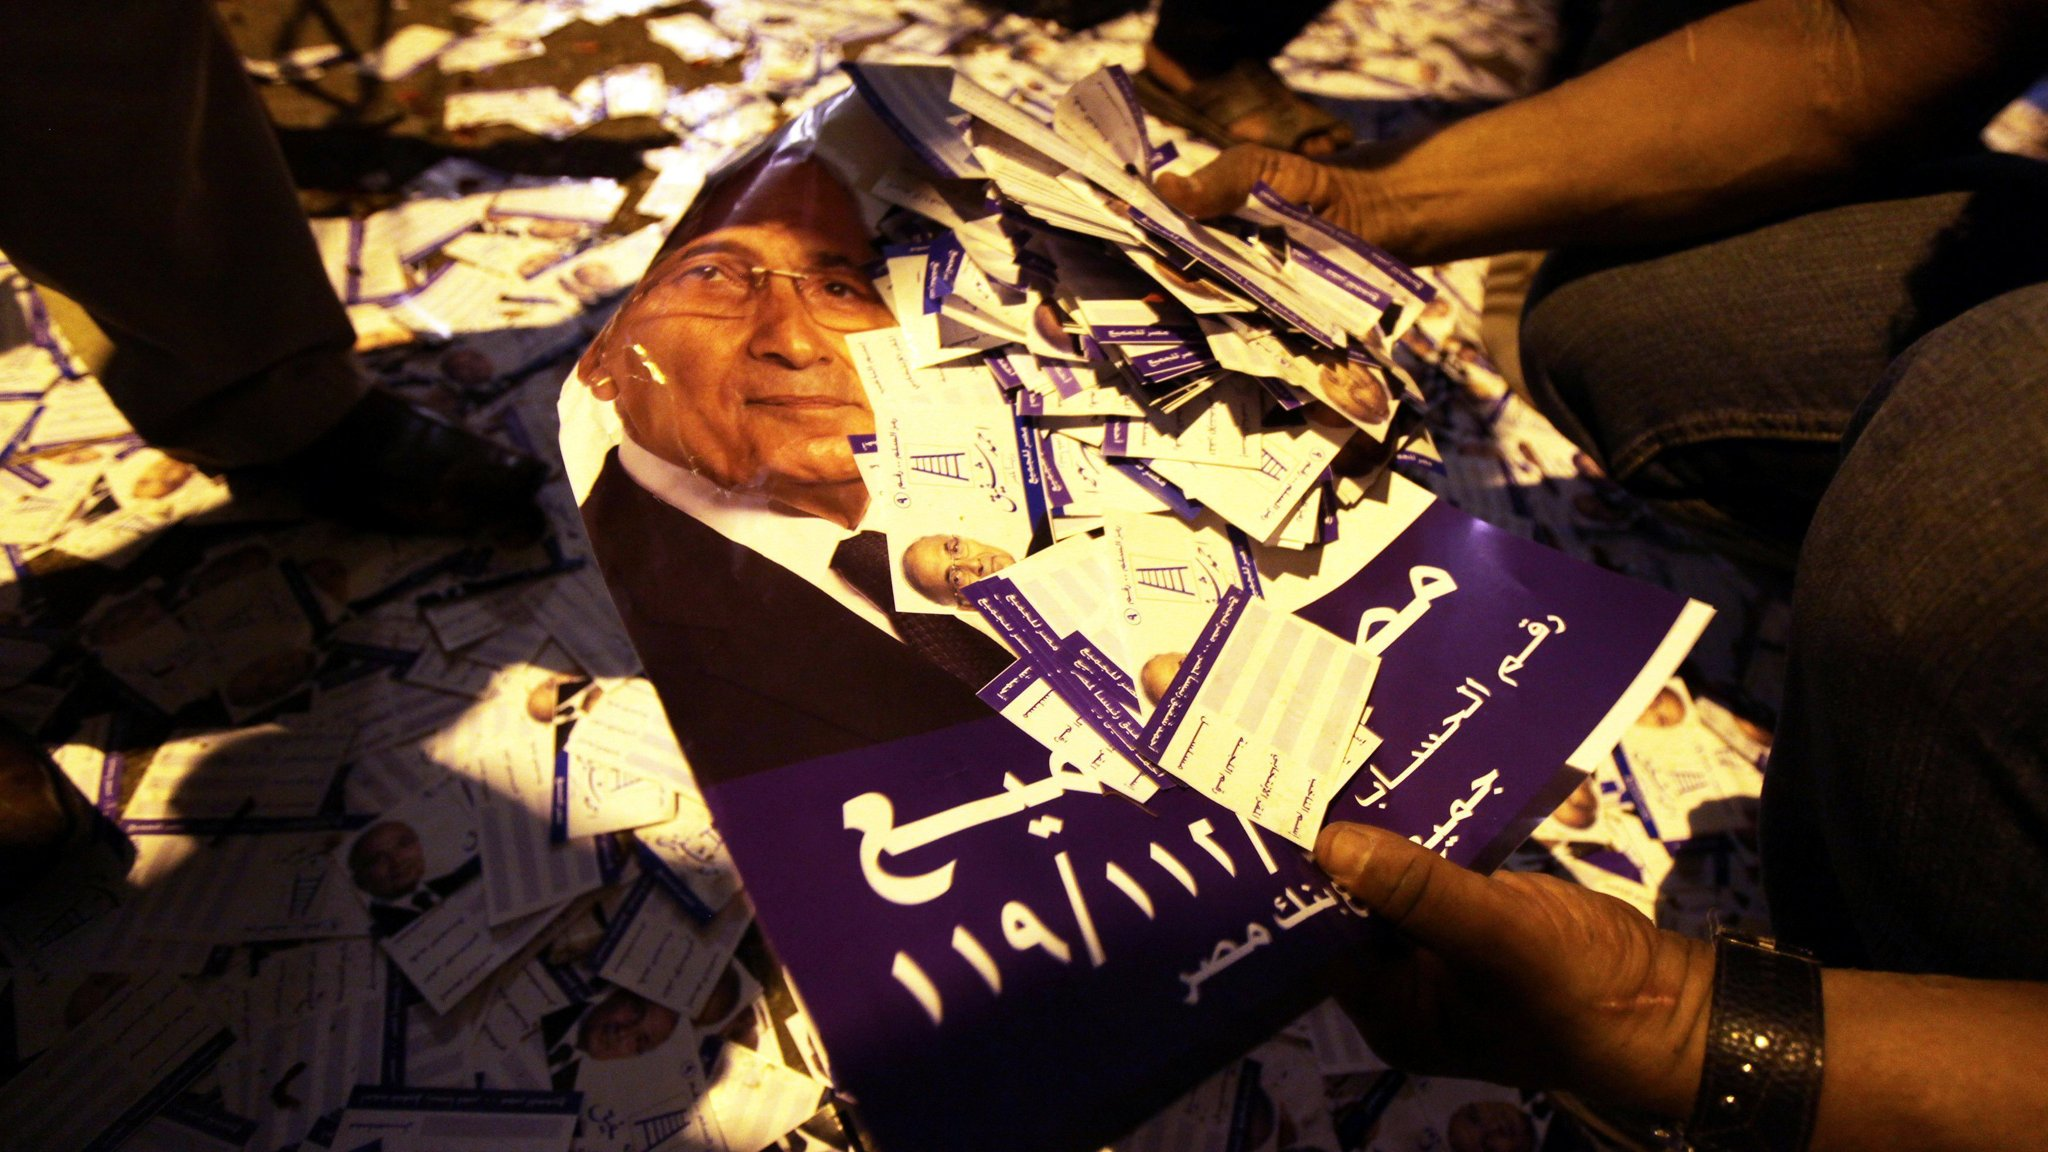 Former Egyptian PM missing after being held in UAE